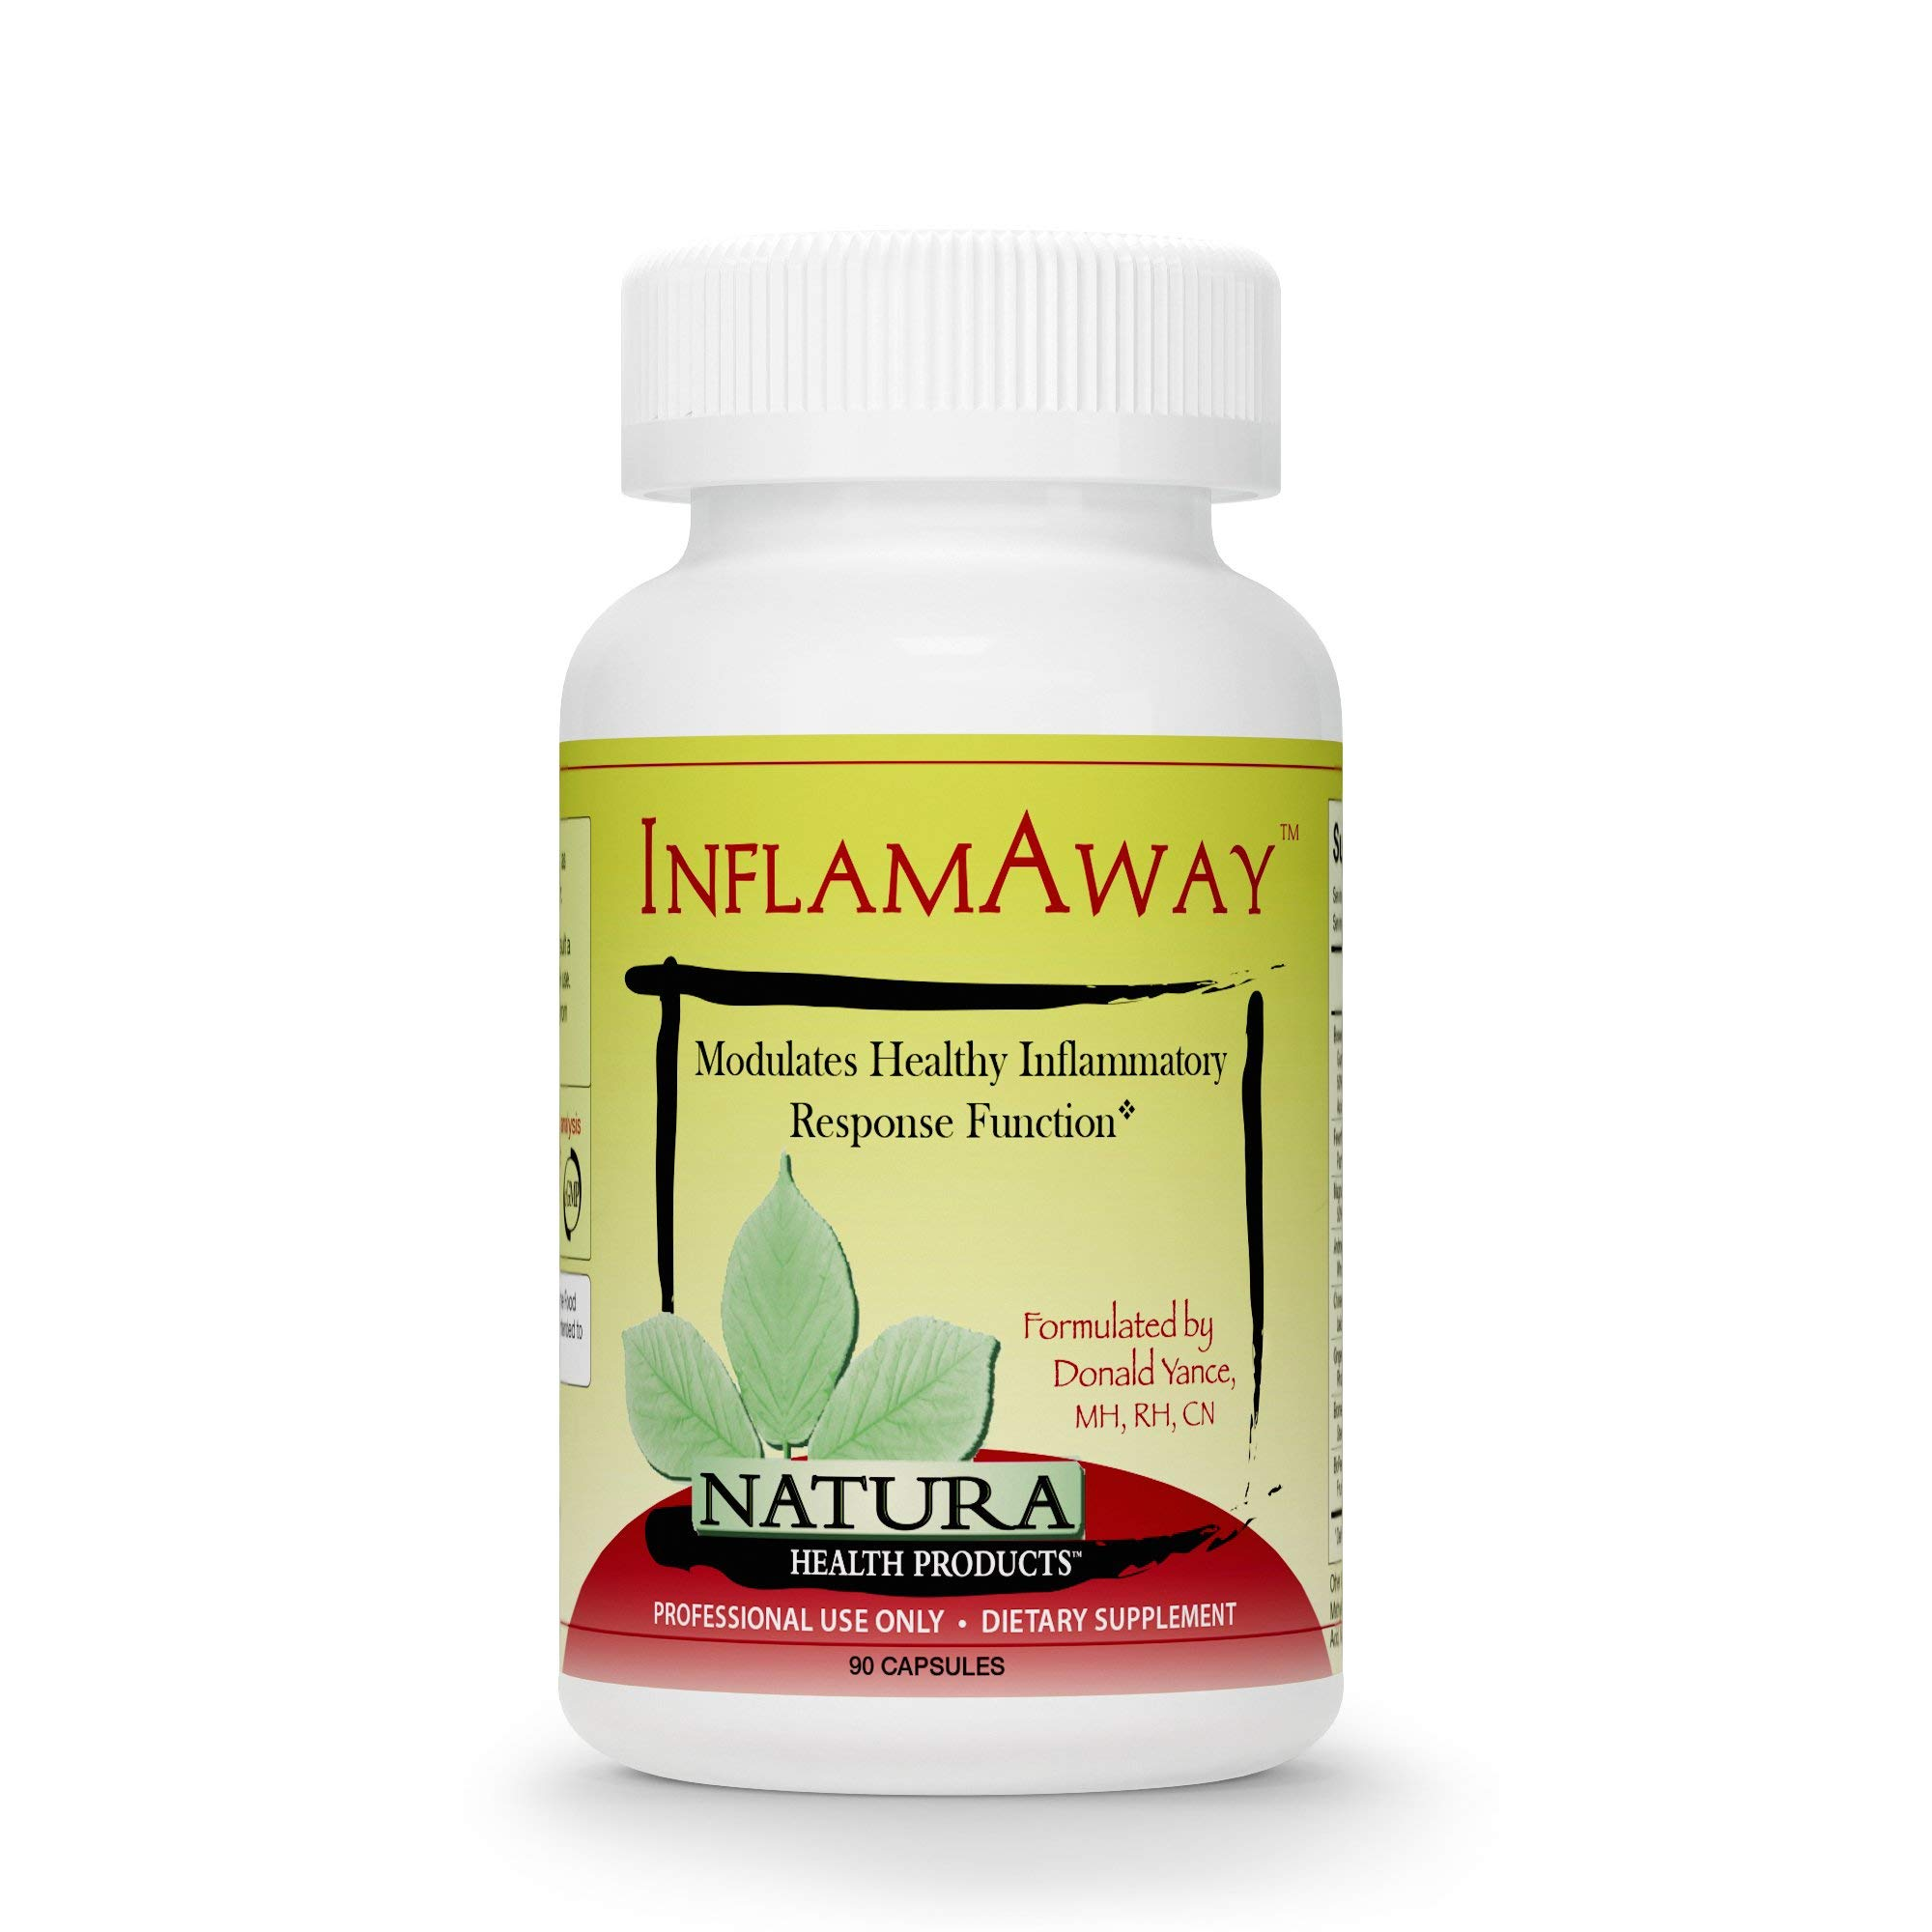 Natura Health Products - InflamAway Healthy Inflammatory Response Support Supplement - Natural Potent Herbal Relief with 30% AKBA Boswellia Serrata and Bioperine Black Pepper - 90 Capsules by Natura Health Products